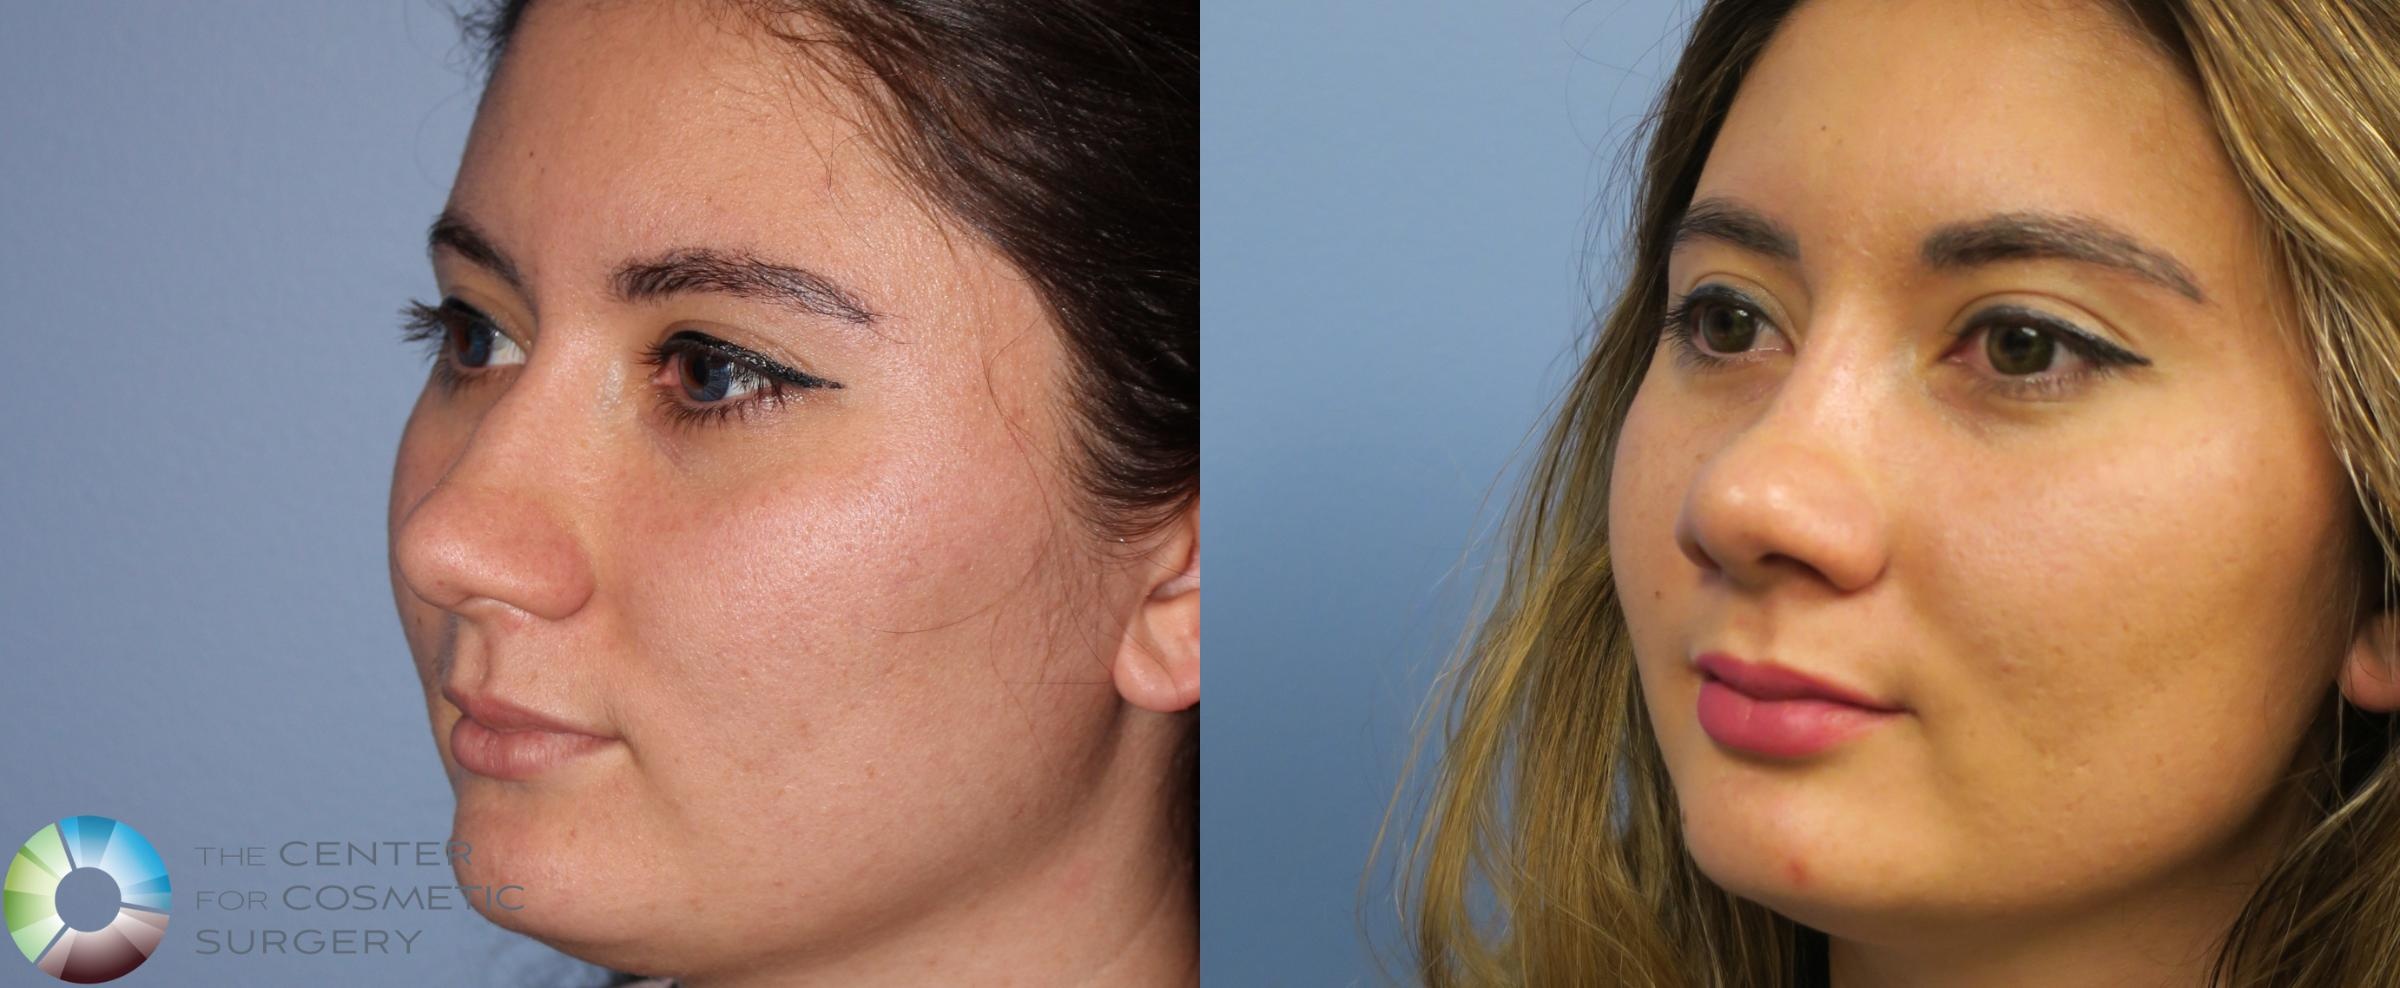 Rhinoplasty Case 820 Before & After View #2 | Golden, CO | The Center for Cosmetic Surgery